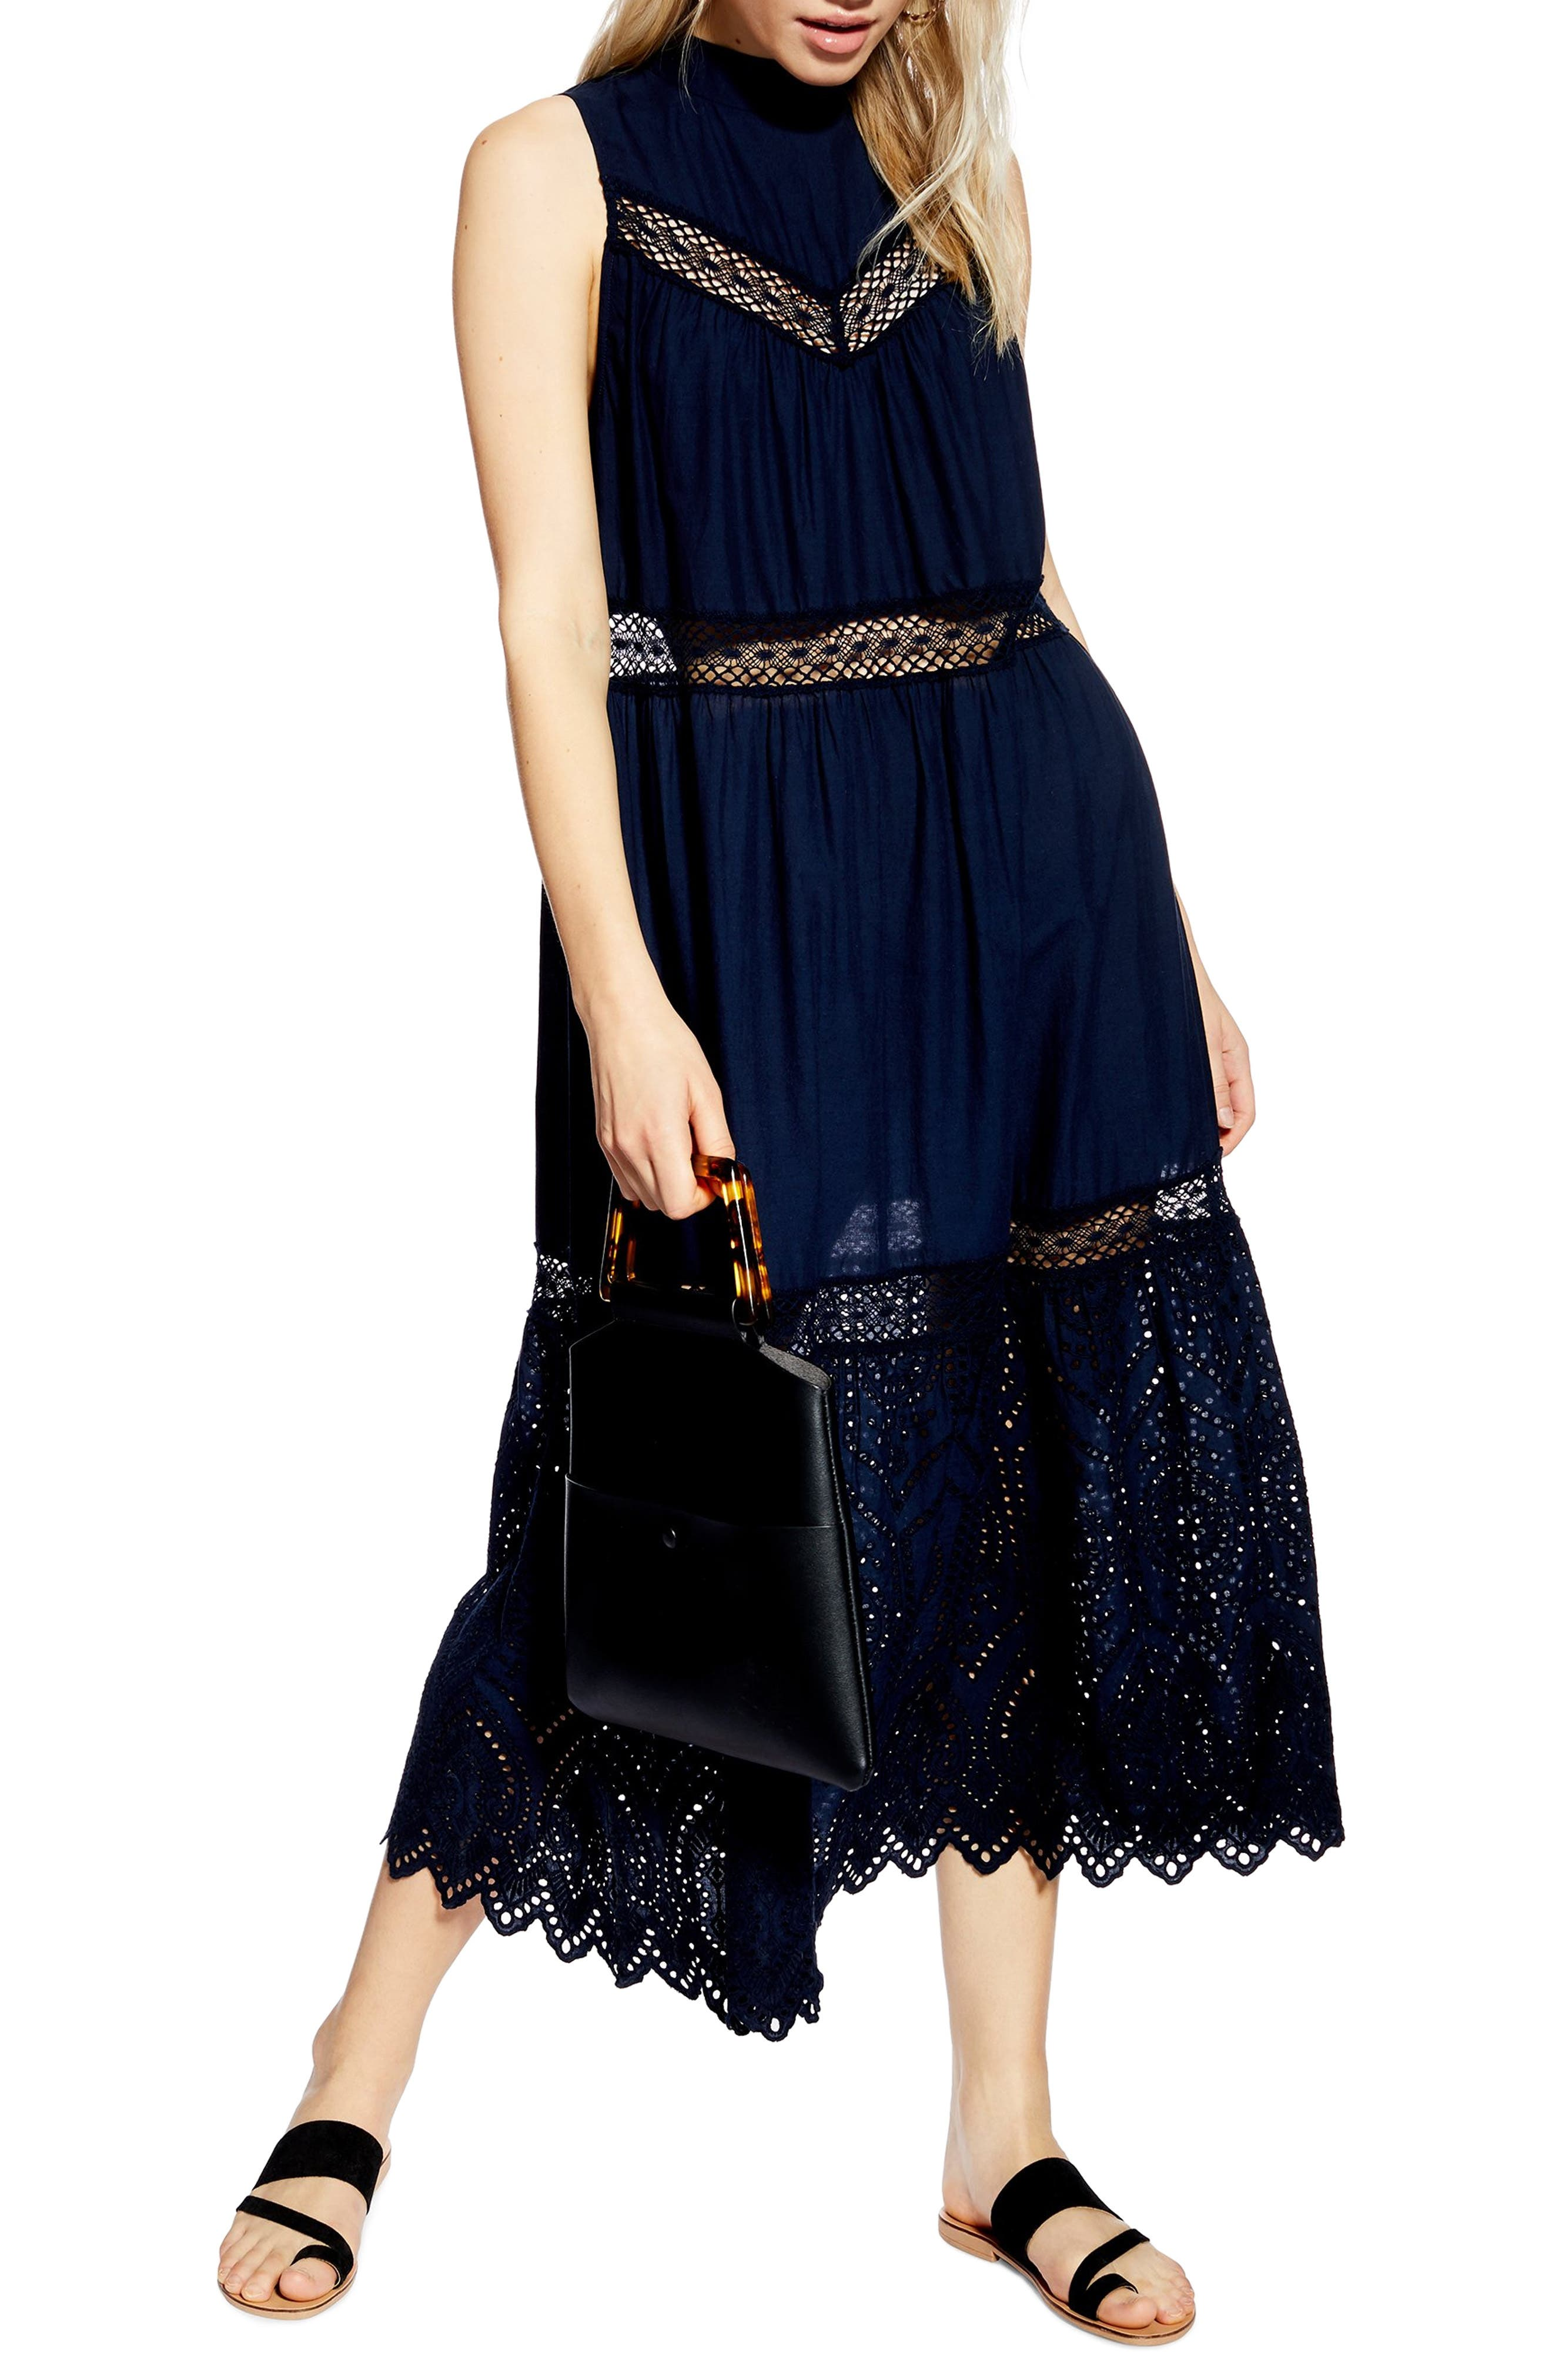 Topshop Broderie Maxi Dress, US (fits like 14) - Blue